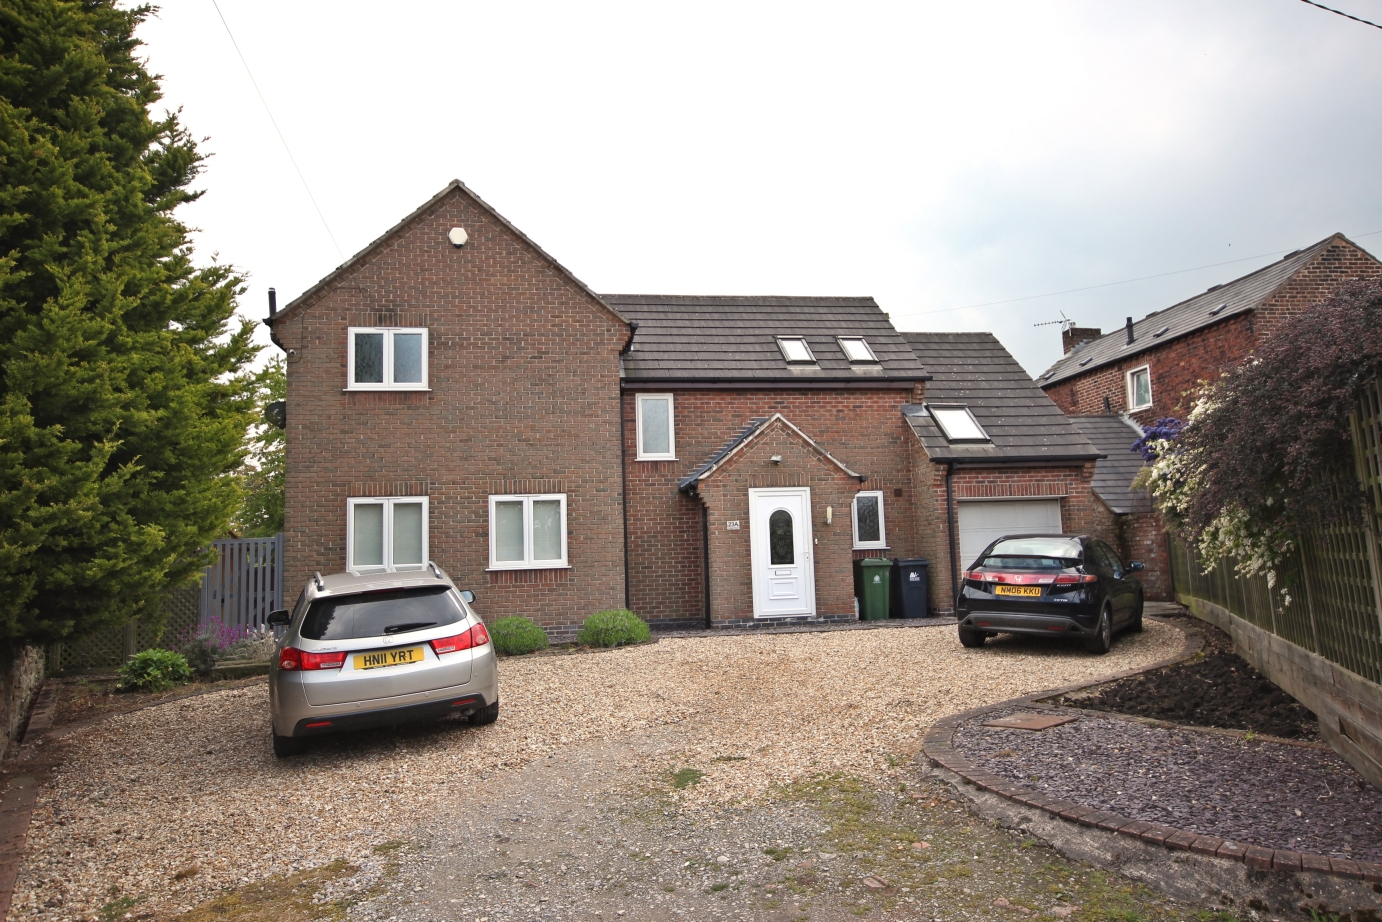 £275,000 Cinder Road, Lower Somercotes, Derbyshire, DE55 4JY - 4 BEDROOM DETACHEDA stunning and impressive home, with light and airy rooms, modern decor and fabulous family and entertaining space throughout, all located down a peaceful lane close to amenities and commuter links. EPC rating C